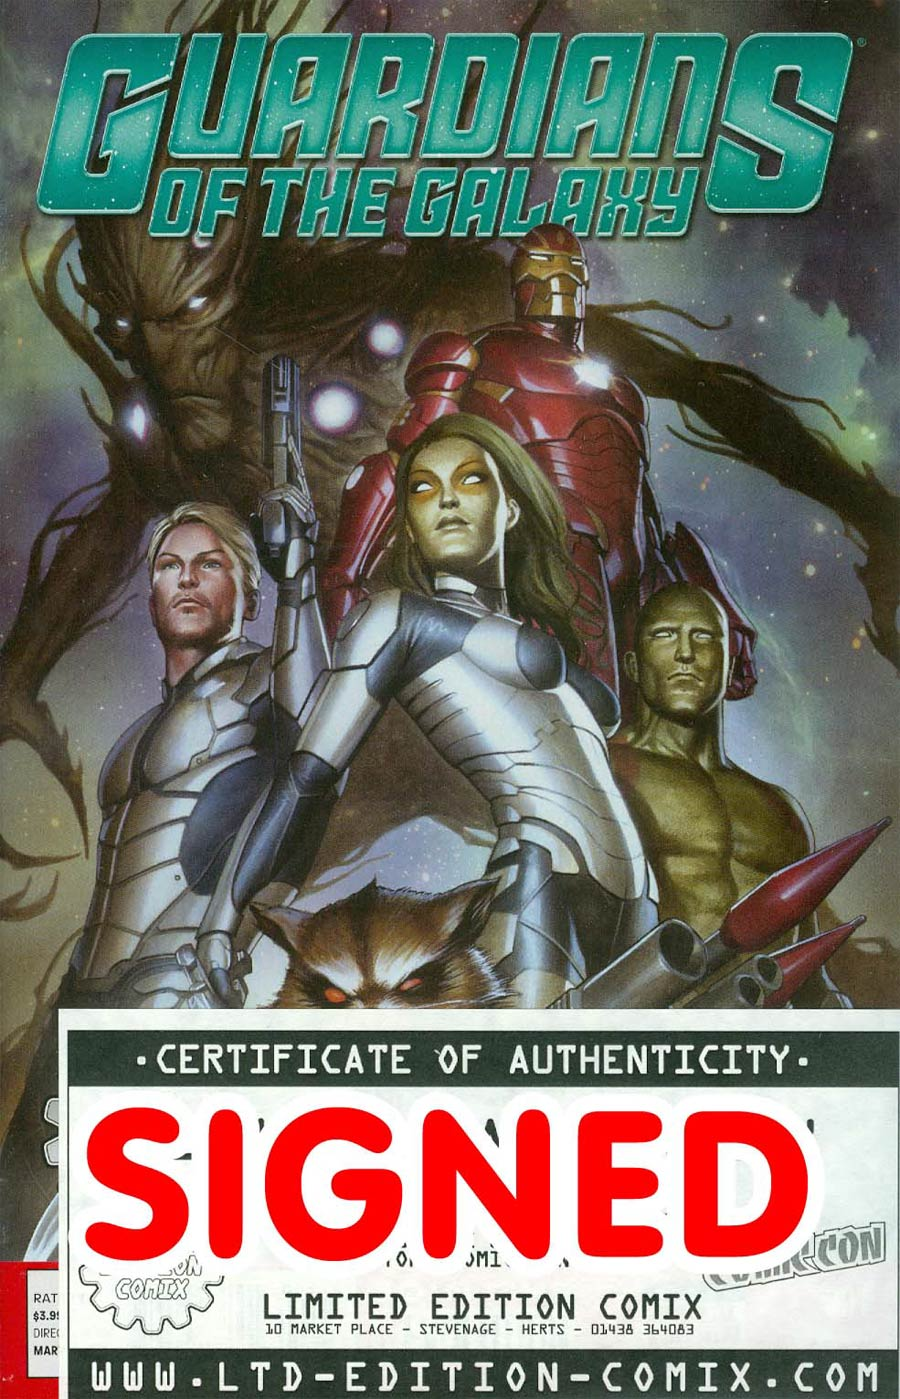 Guardians Of The Galaxy Vol 3 #1 Cover P Limited Edition Comix Exclusive Adi Granov Variant Cover Signed By Adi Granov